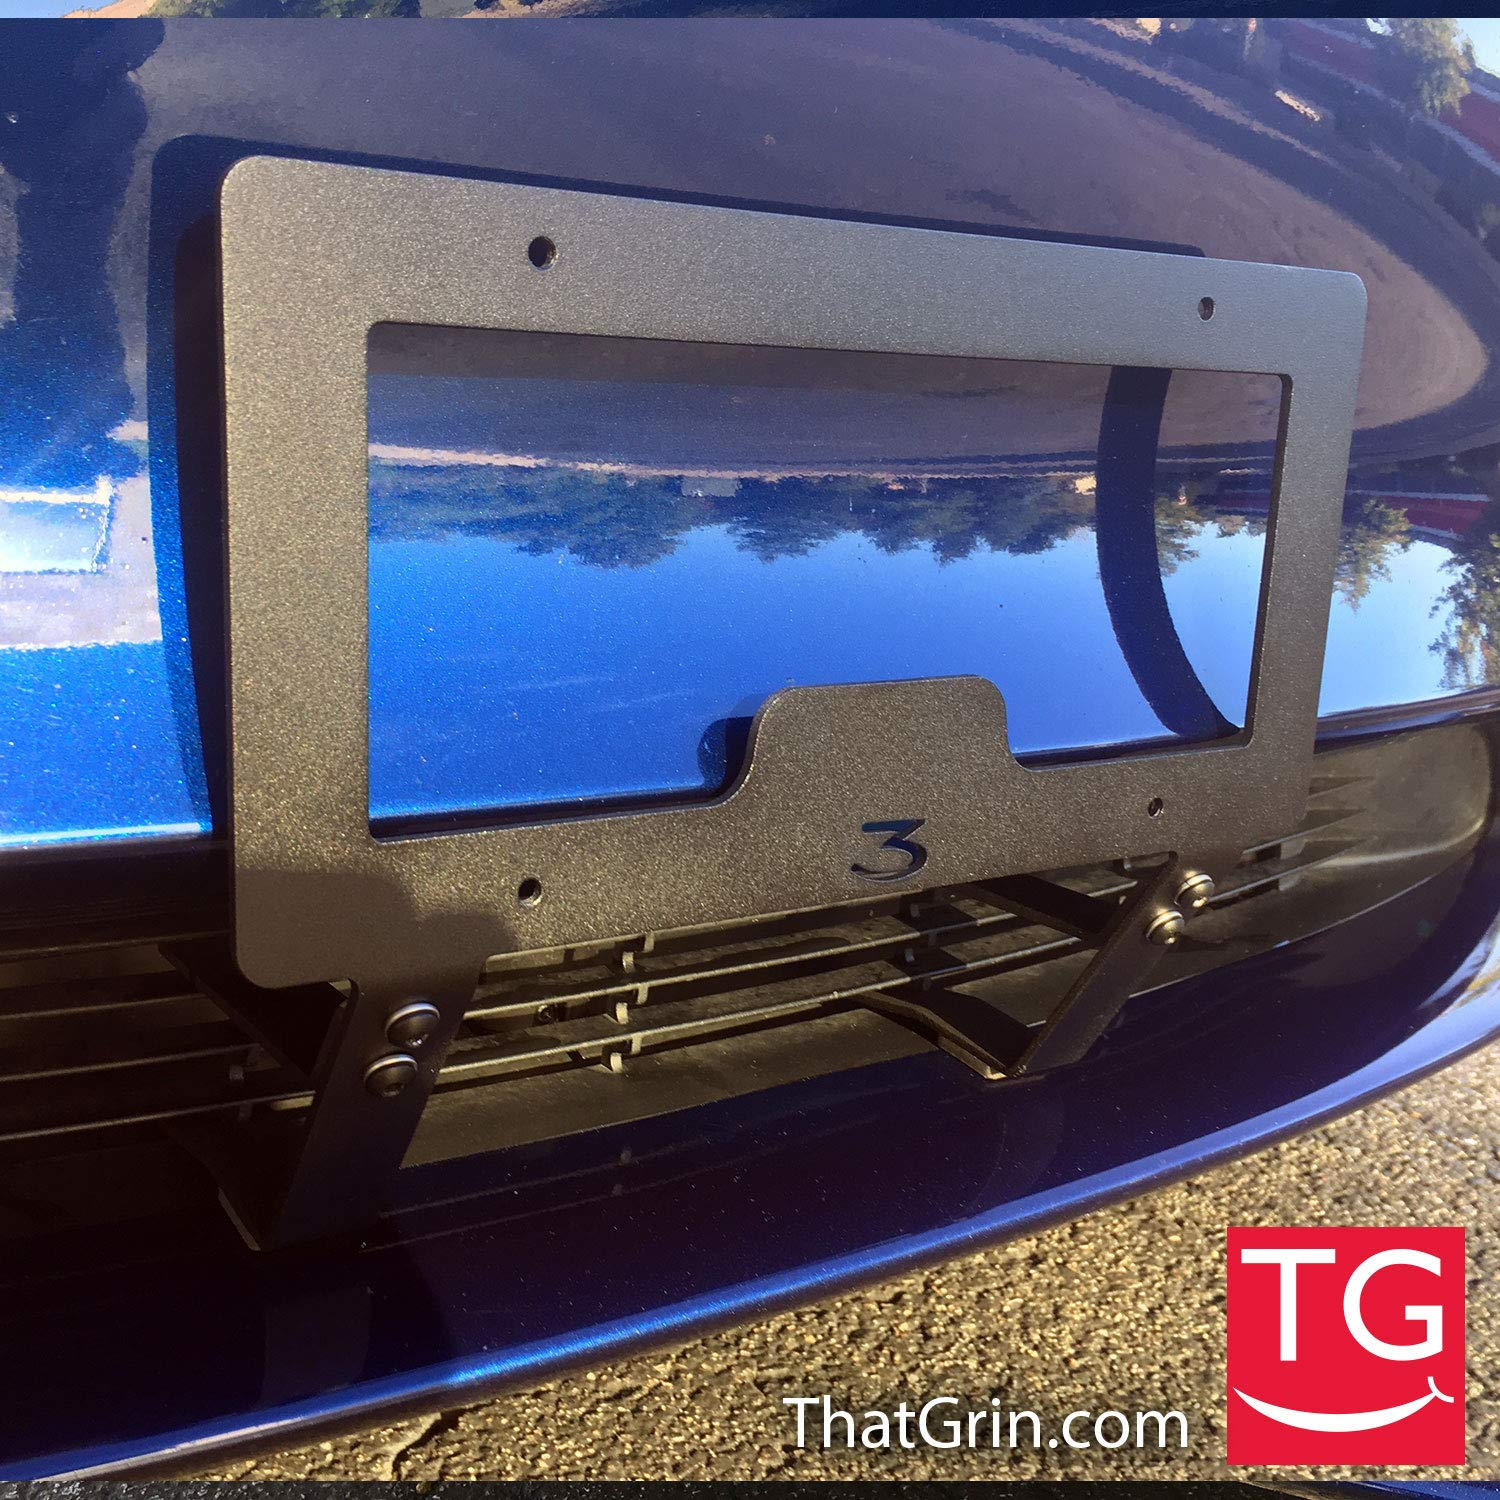 ThatGrin LLC Genuine Slipstream Bracket for Tesla Model 3 - USA Made Version (Patent Pending) - NO Drilling, NO Holes, NO Adhesives Front License Plate Mounting Holder by TheTes Grin LLC (Image #6)